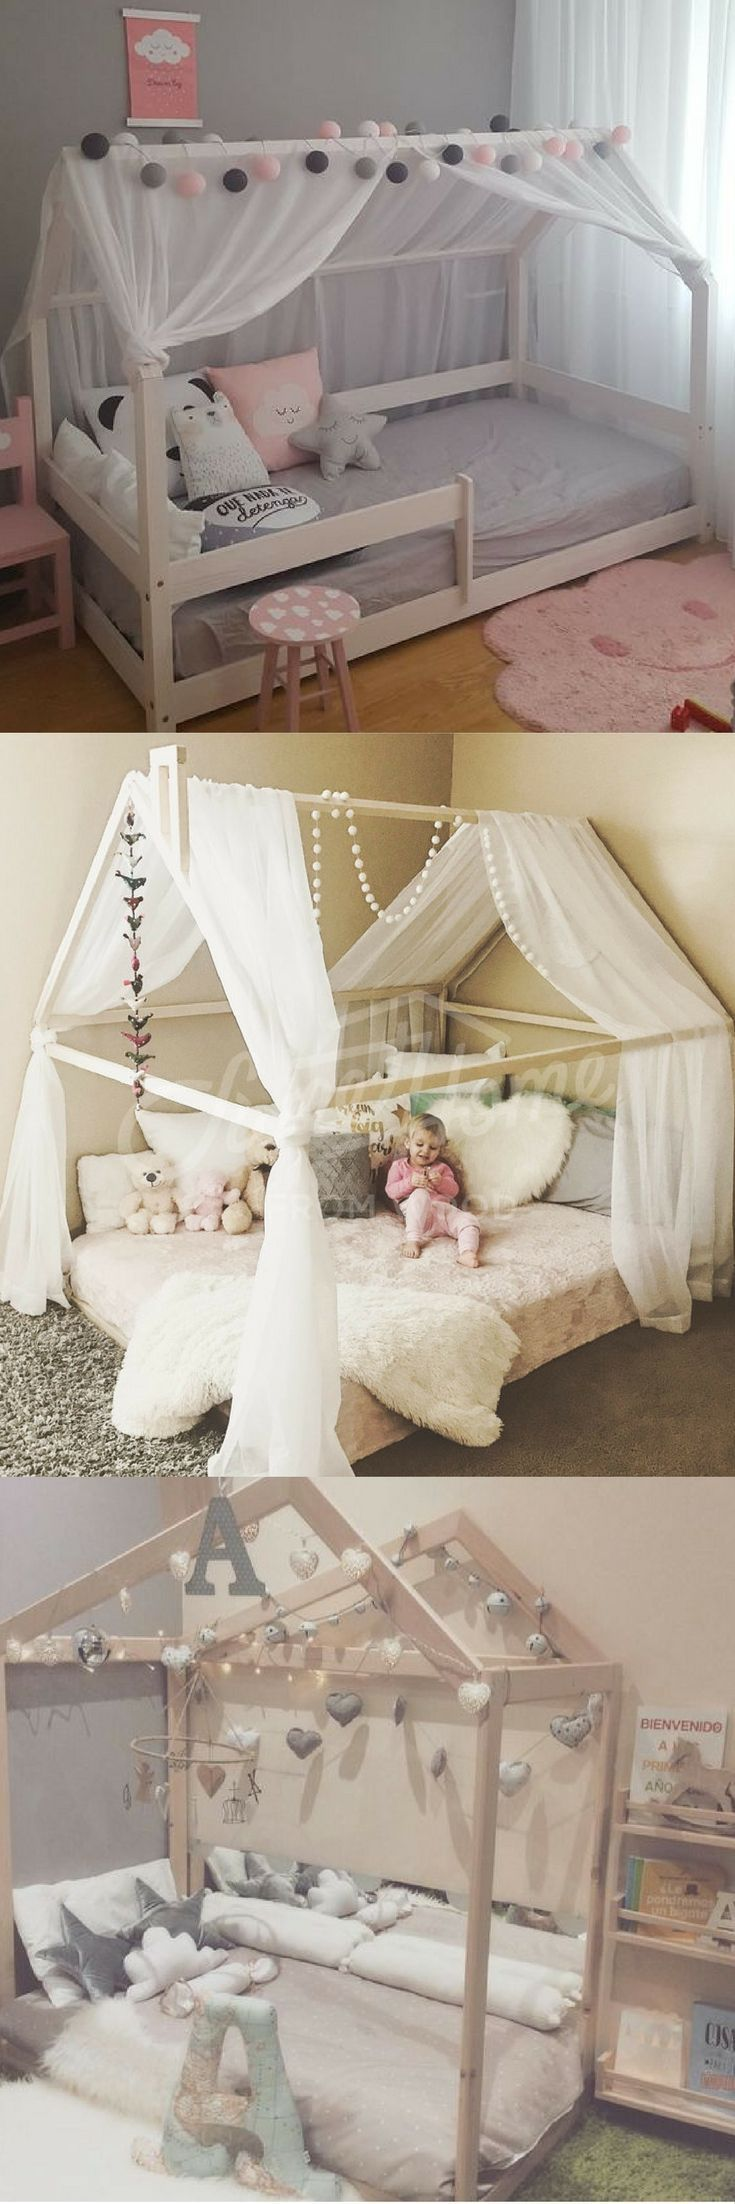 Pretty kid or toddler house bed designs.  Was never a fan of grey or pastels, now I want it every where!